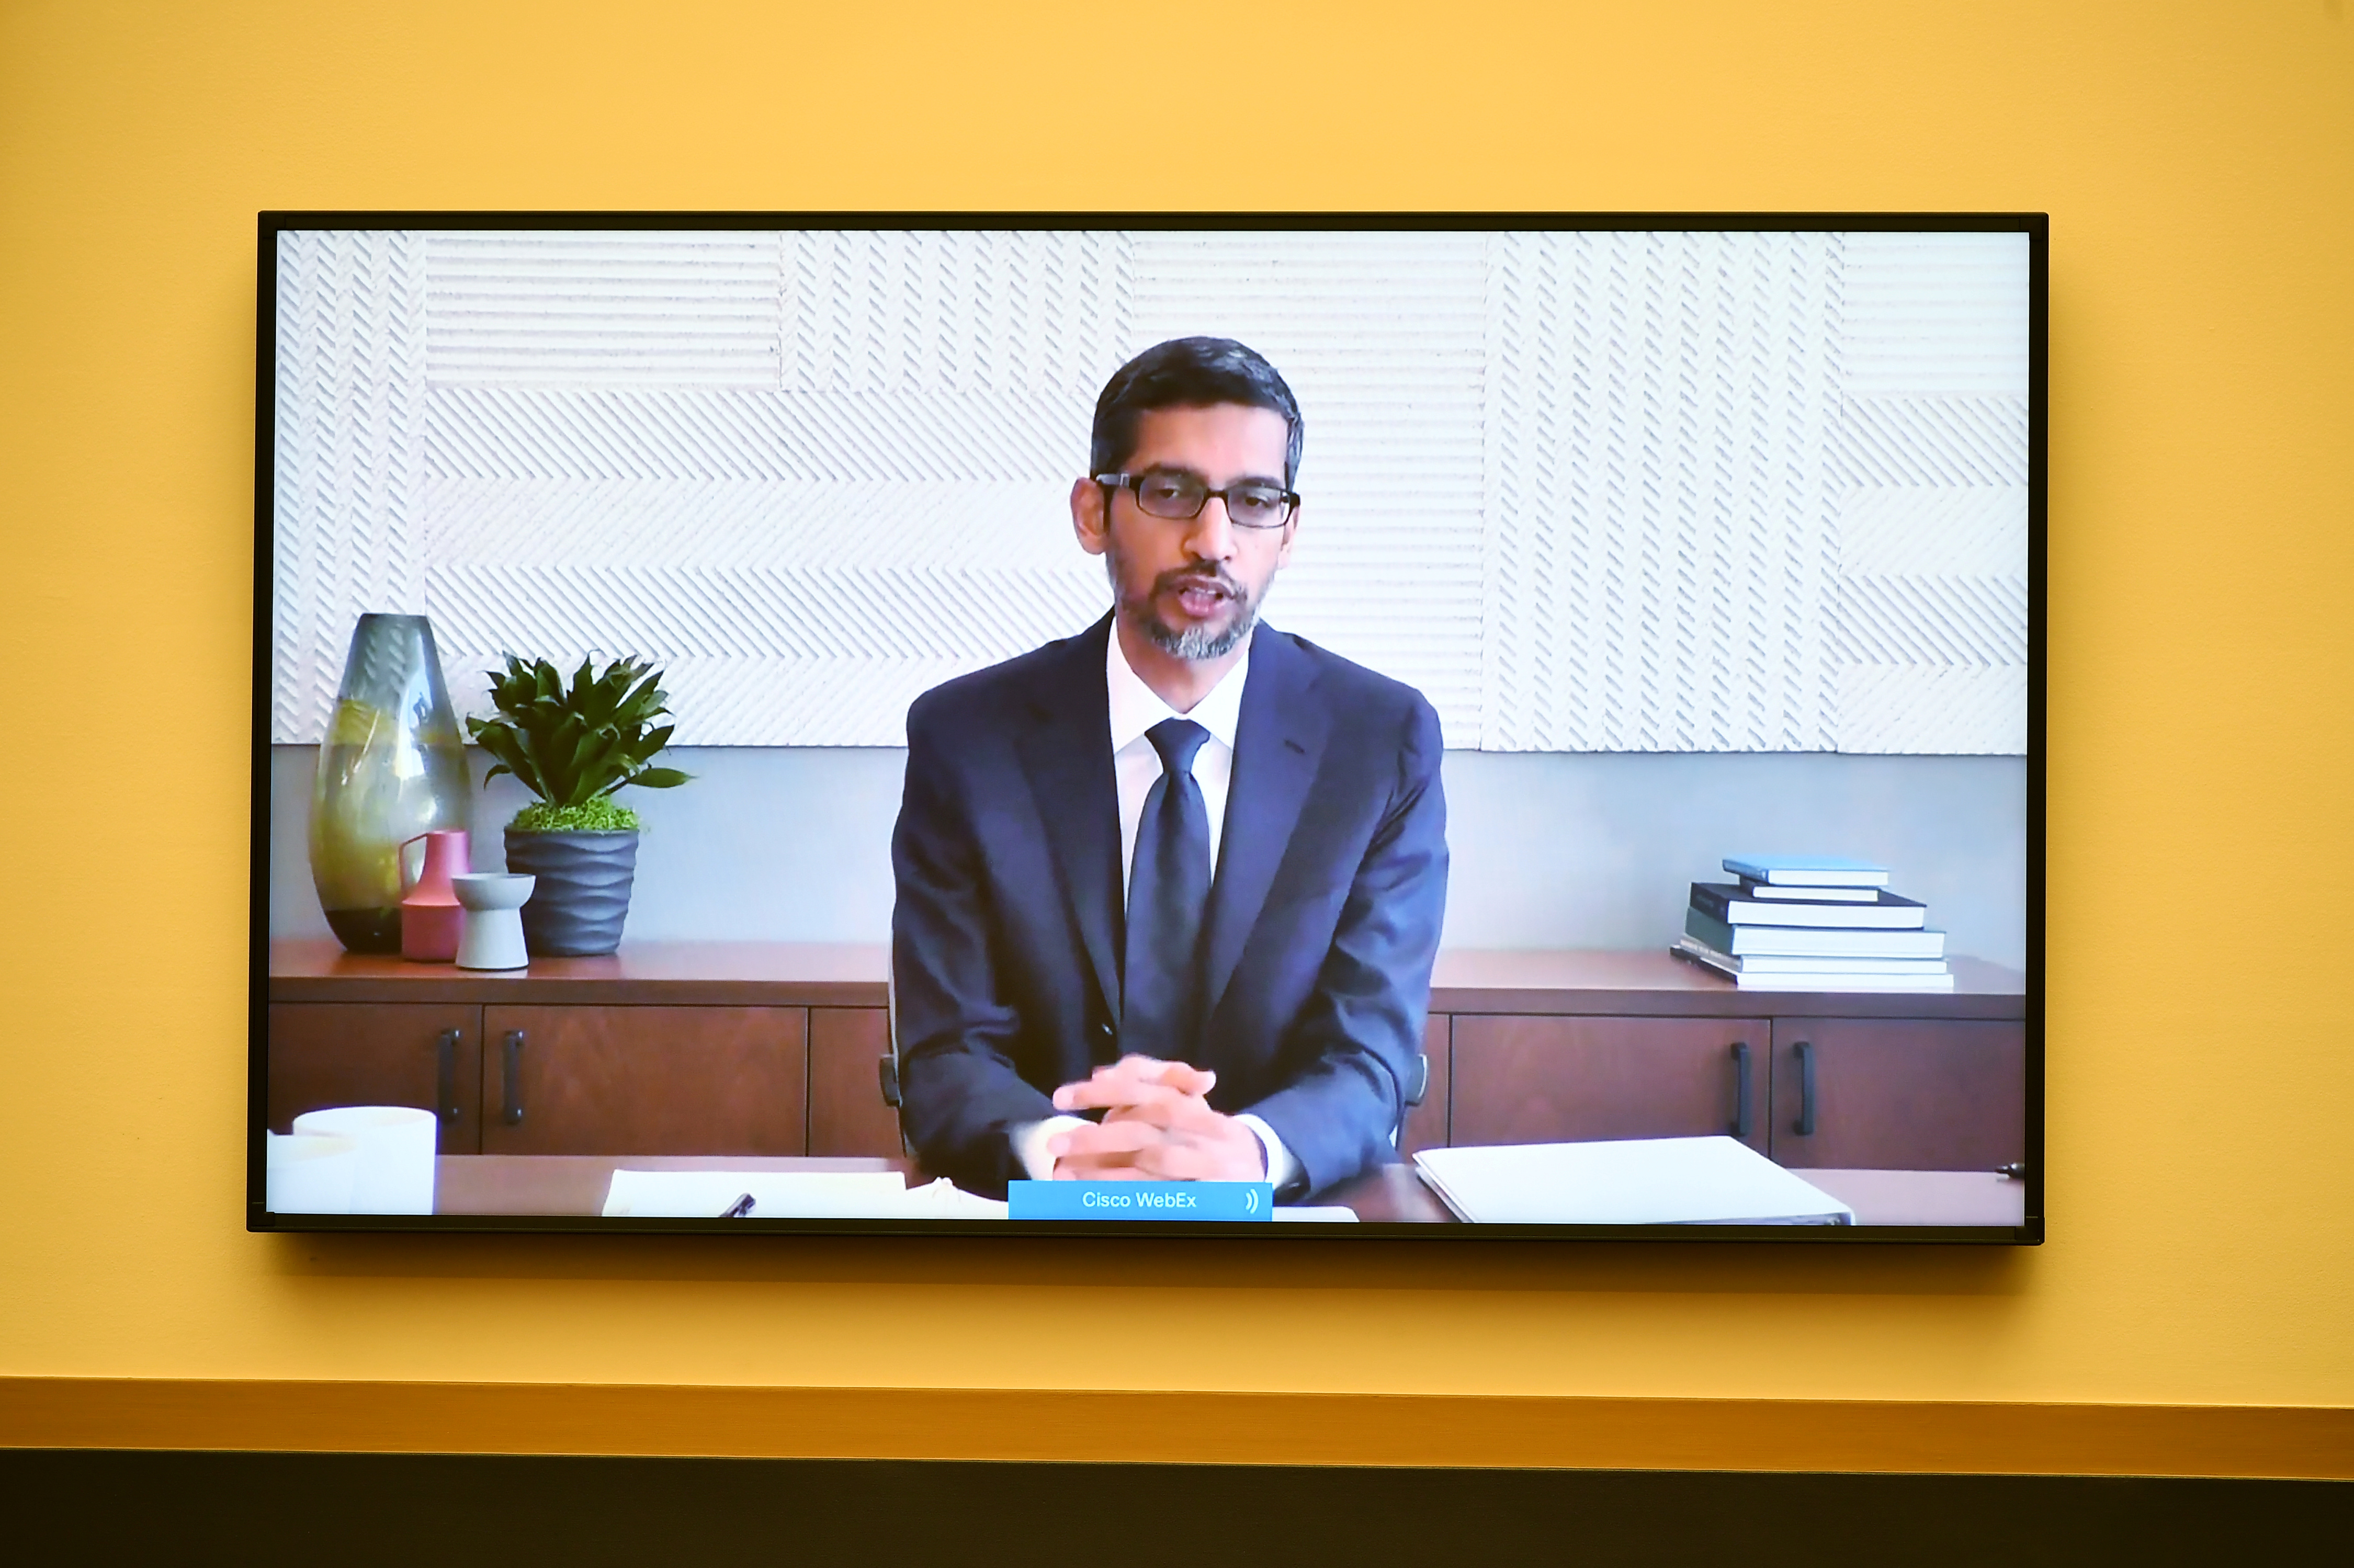 Google CEO Sundar Pichai testifies before the House Judiciary Subcommittee on Antitrust, Commercial and Administrative Law.